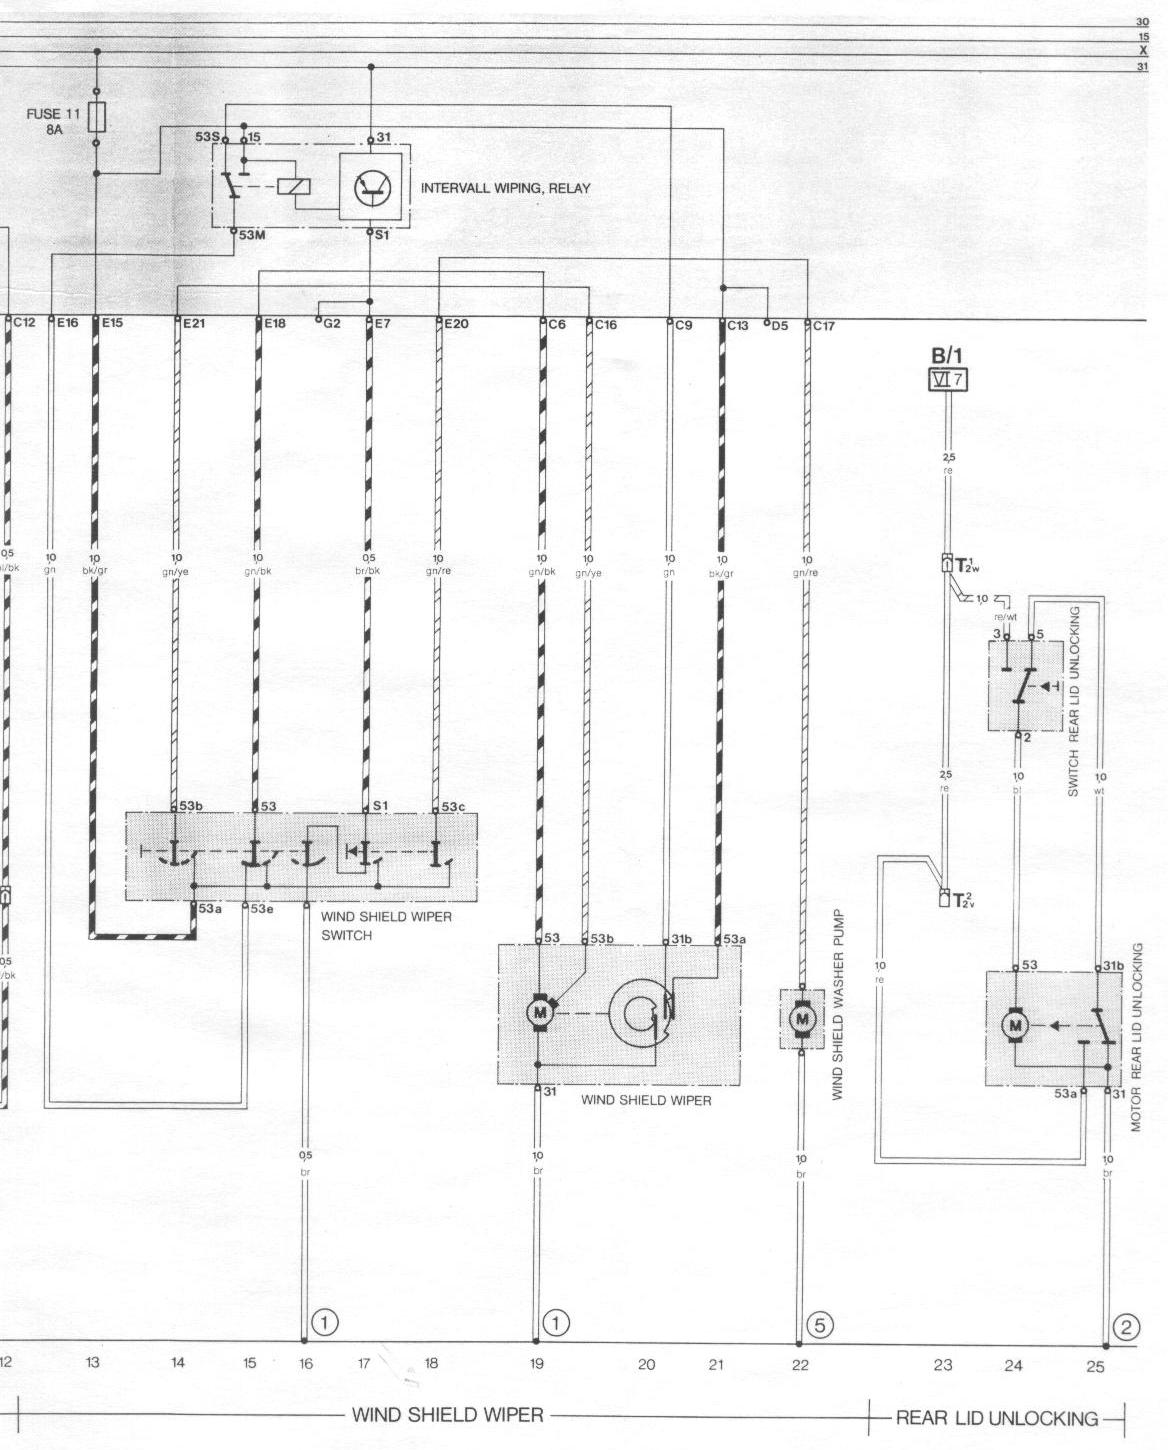 944_84_5_2 pelican parts porsche 924 944 electrical diagrams 1984 porsche 944 wiring diagram at bayanpartner.co